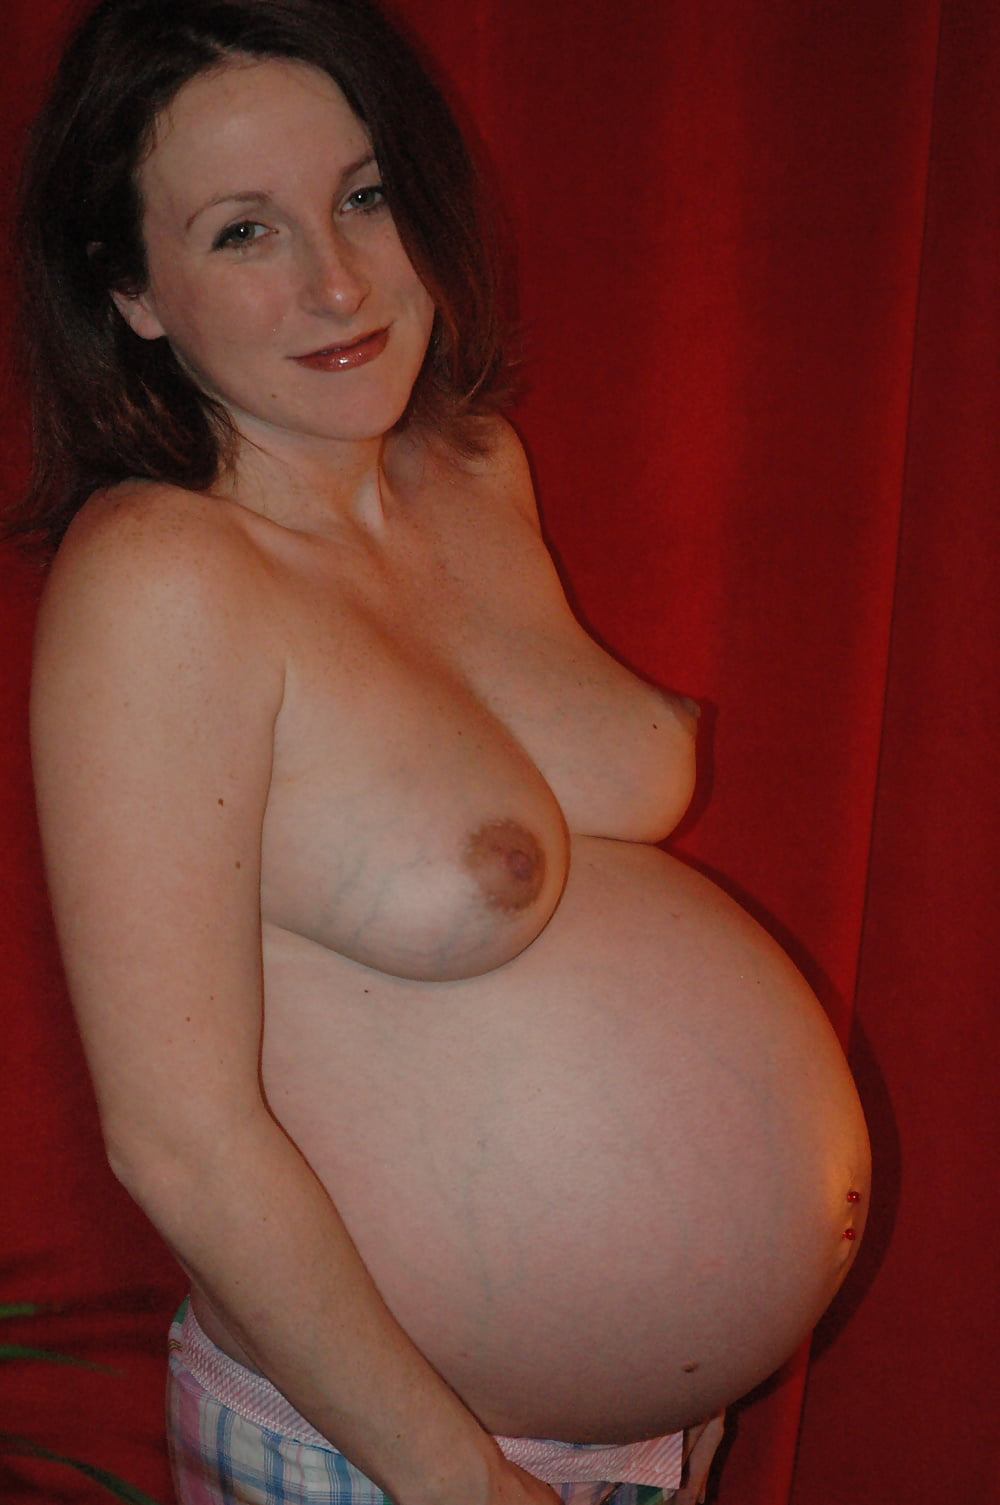 Hot Pregnant Girls And Naked Women Photos